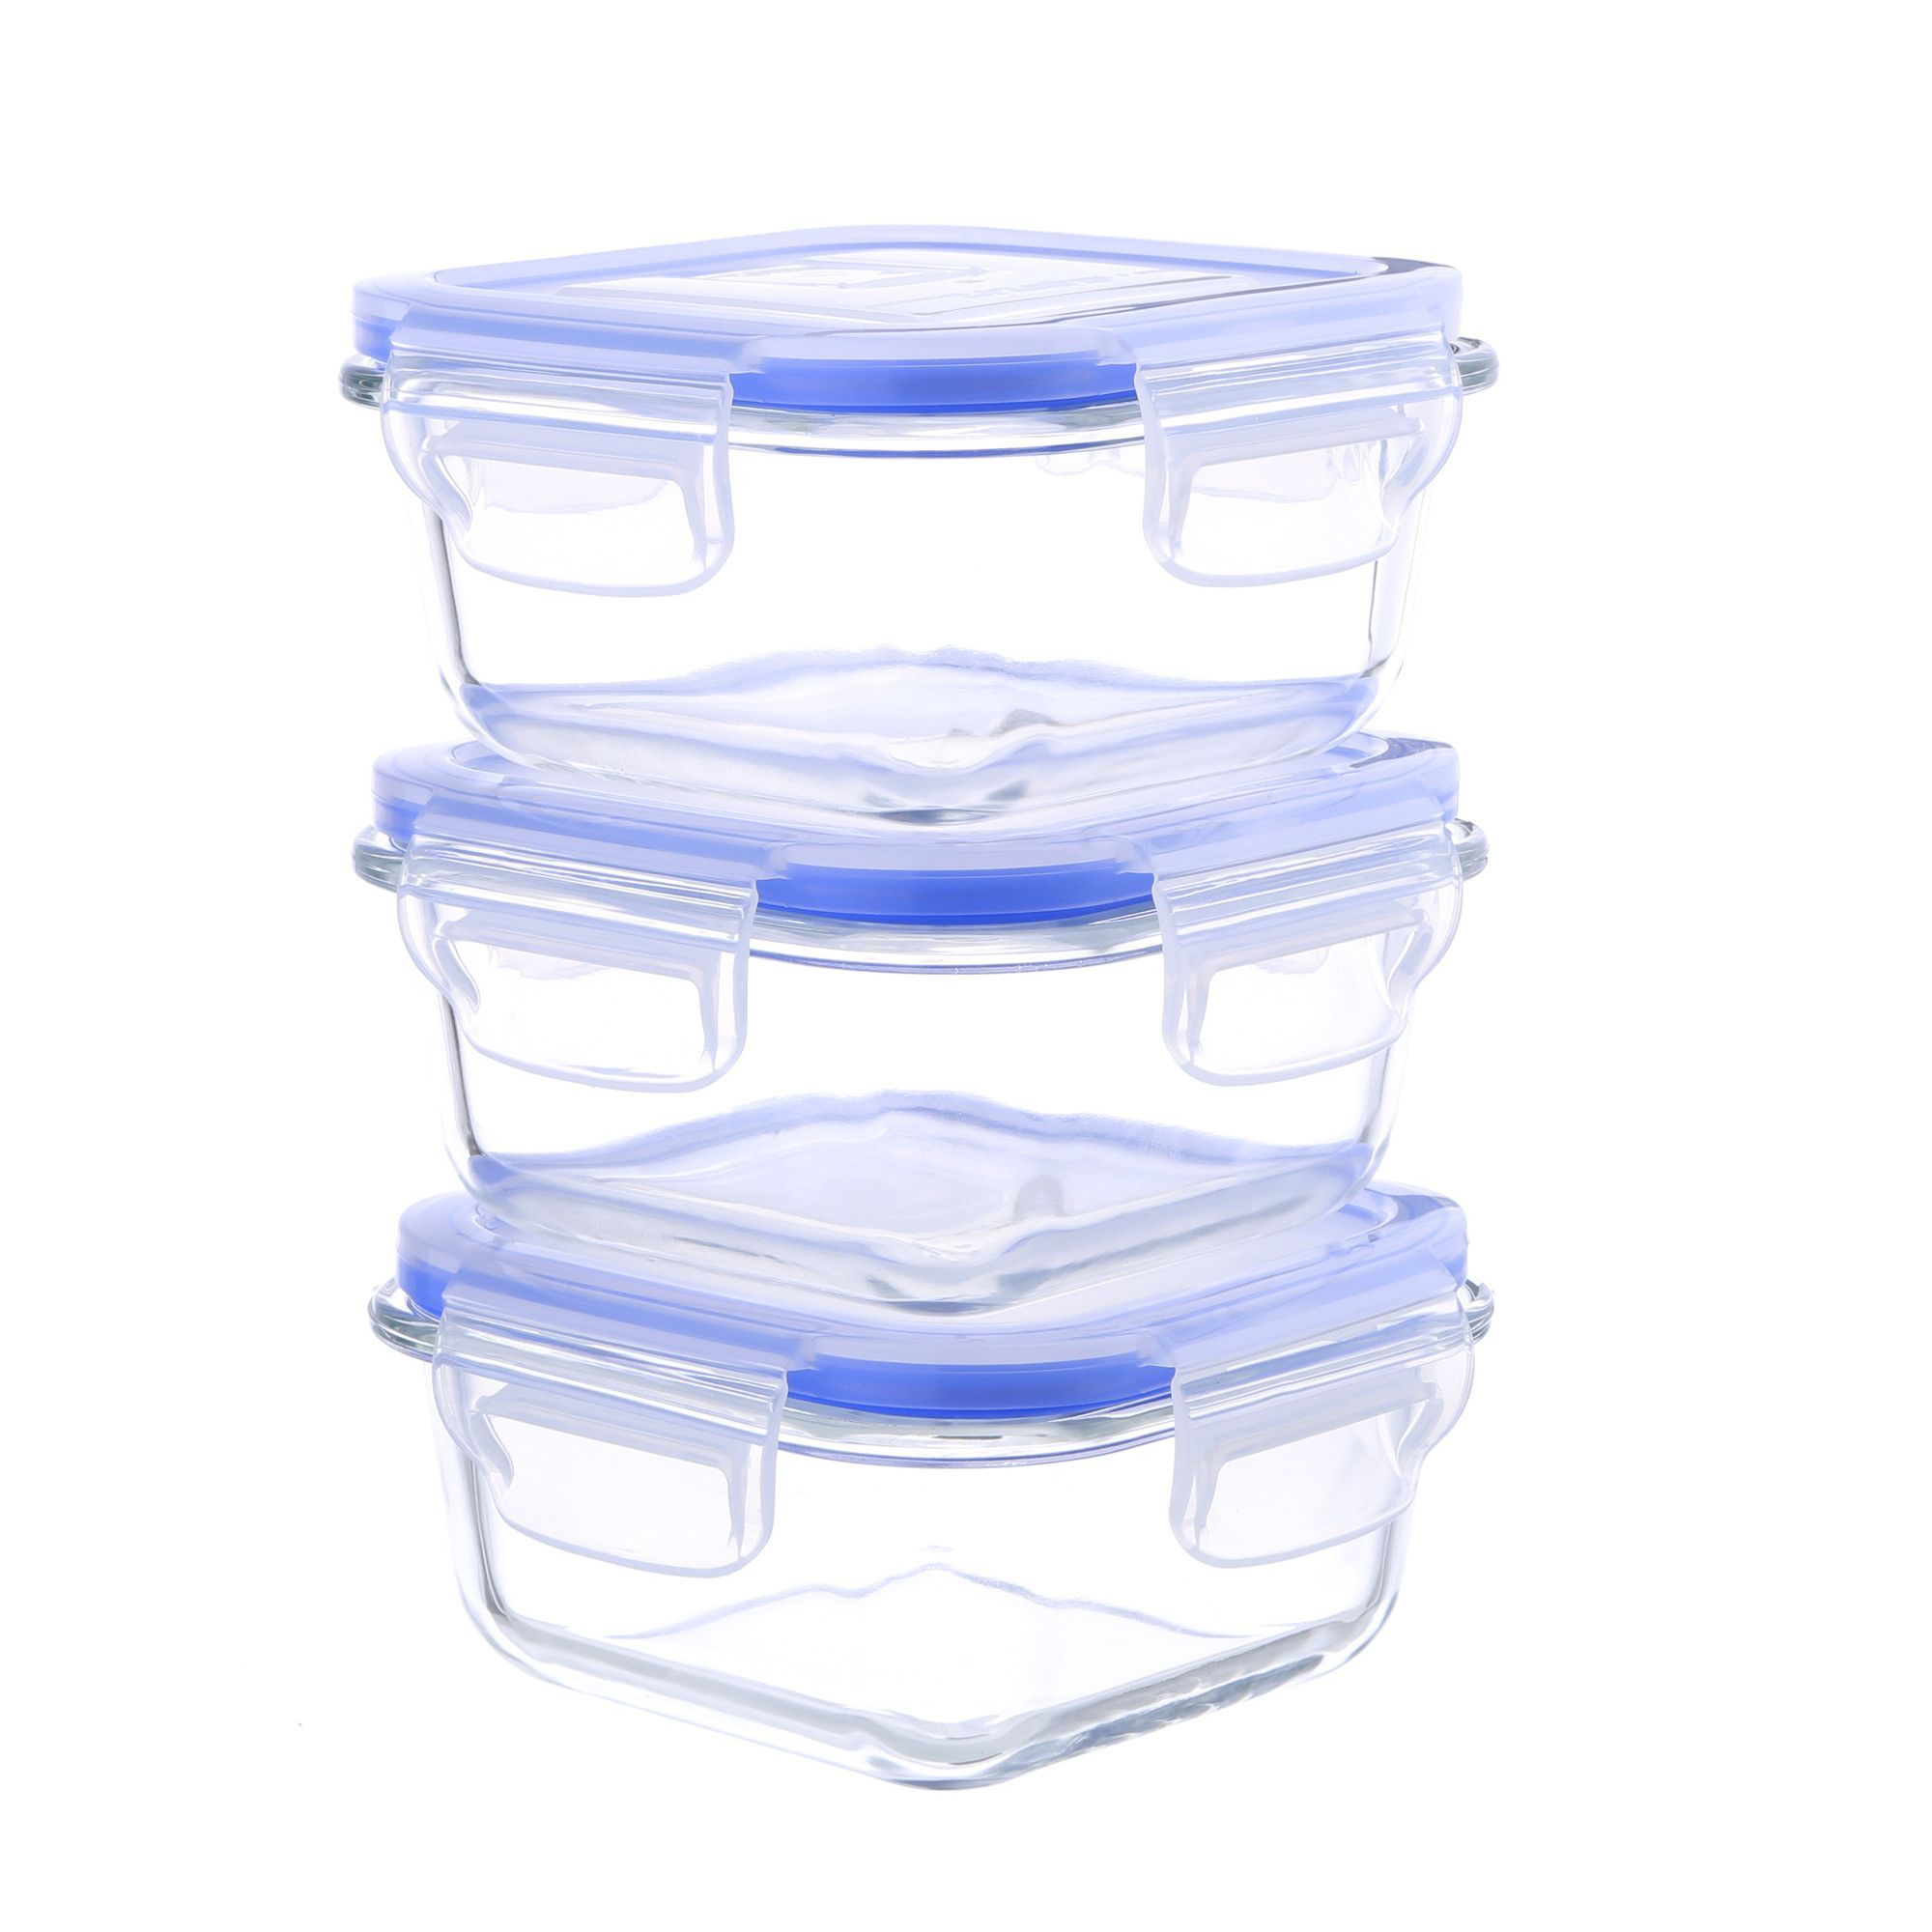 Glasslock Food Storage Container Sets Go Green Glasslock Elements Oven Safe Square 10 Ozfood Storage